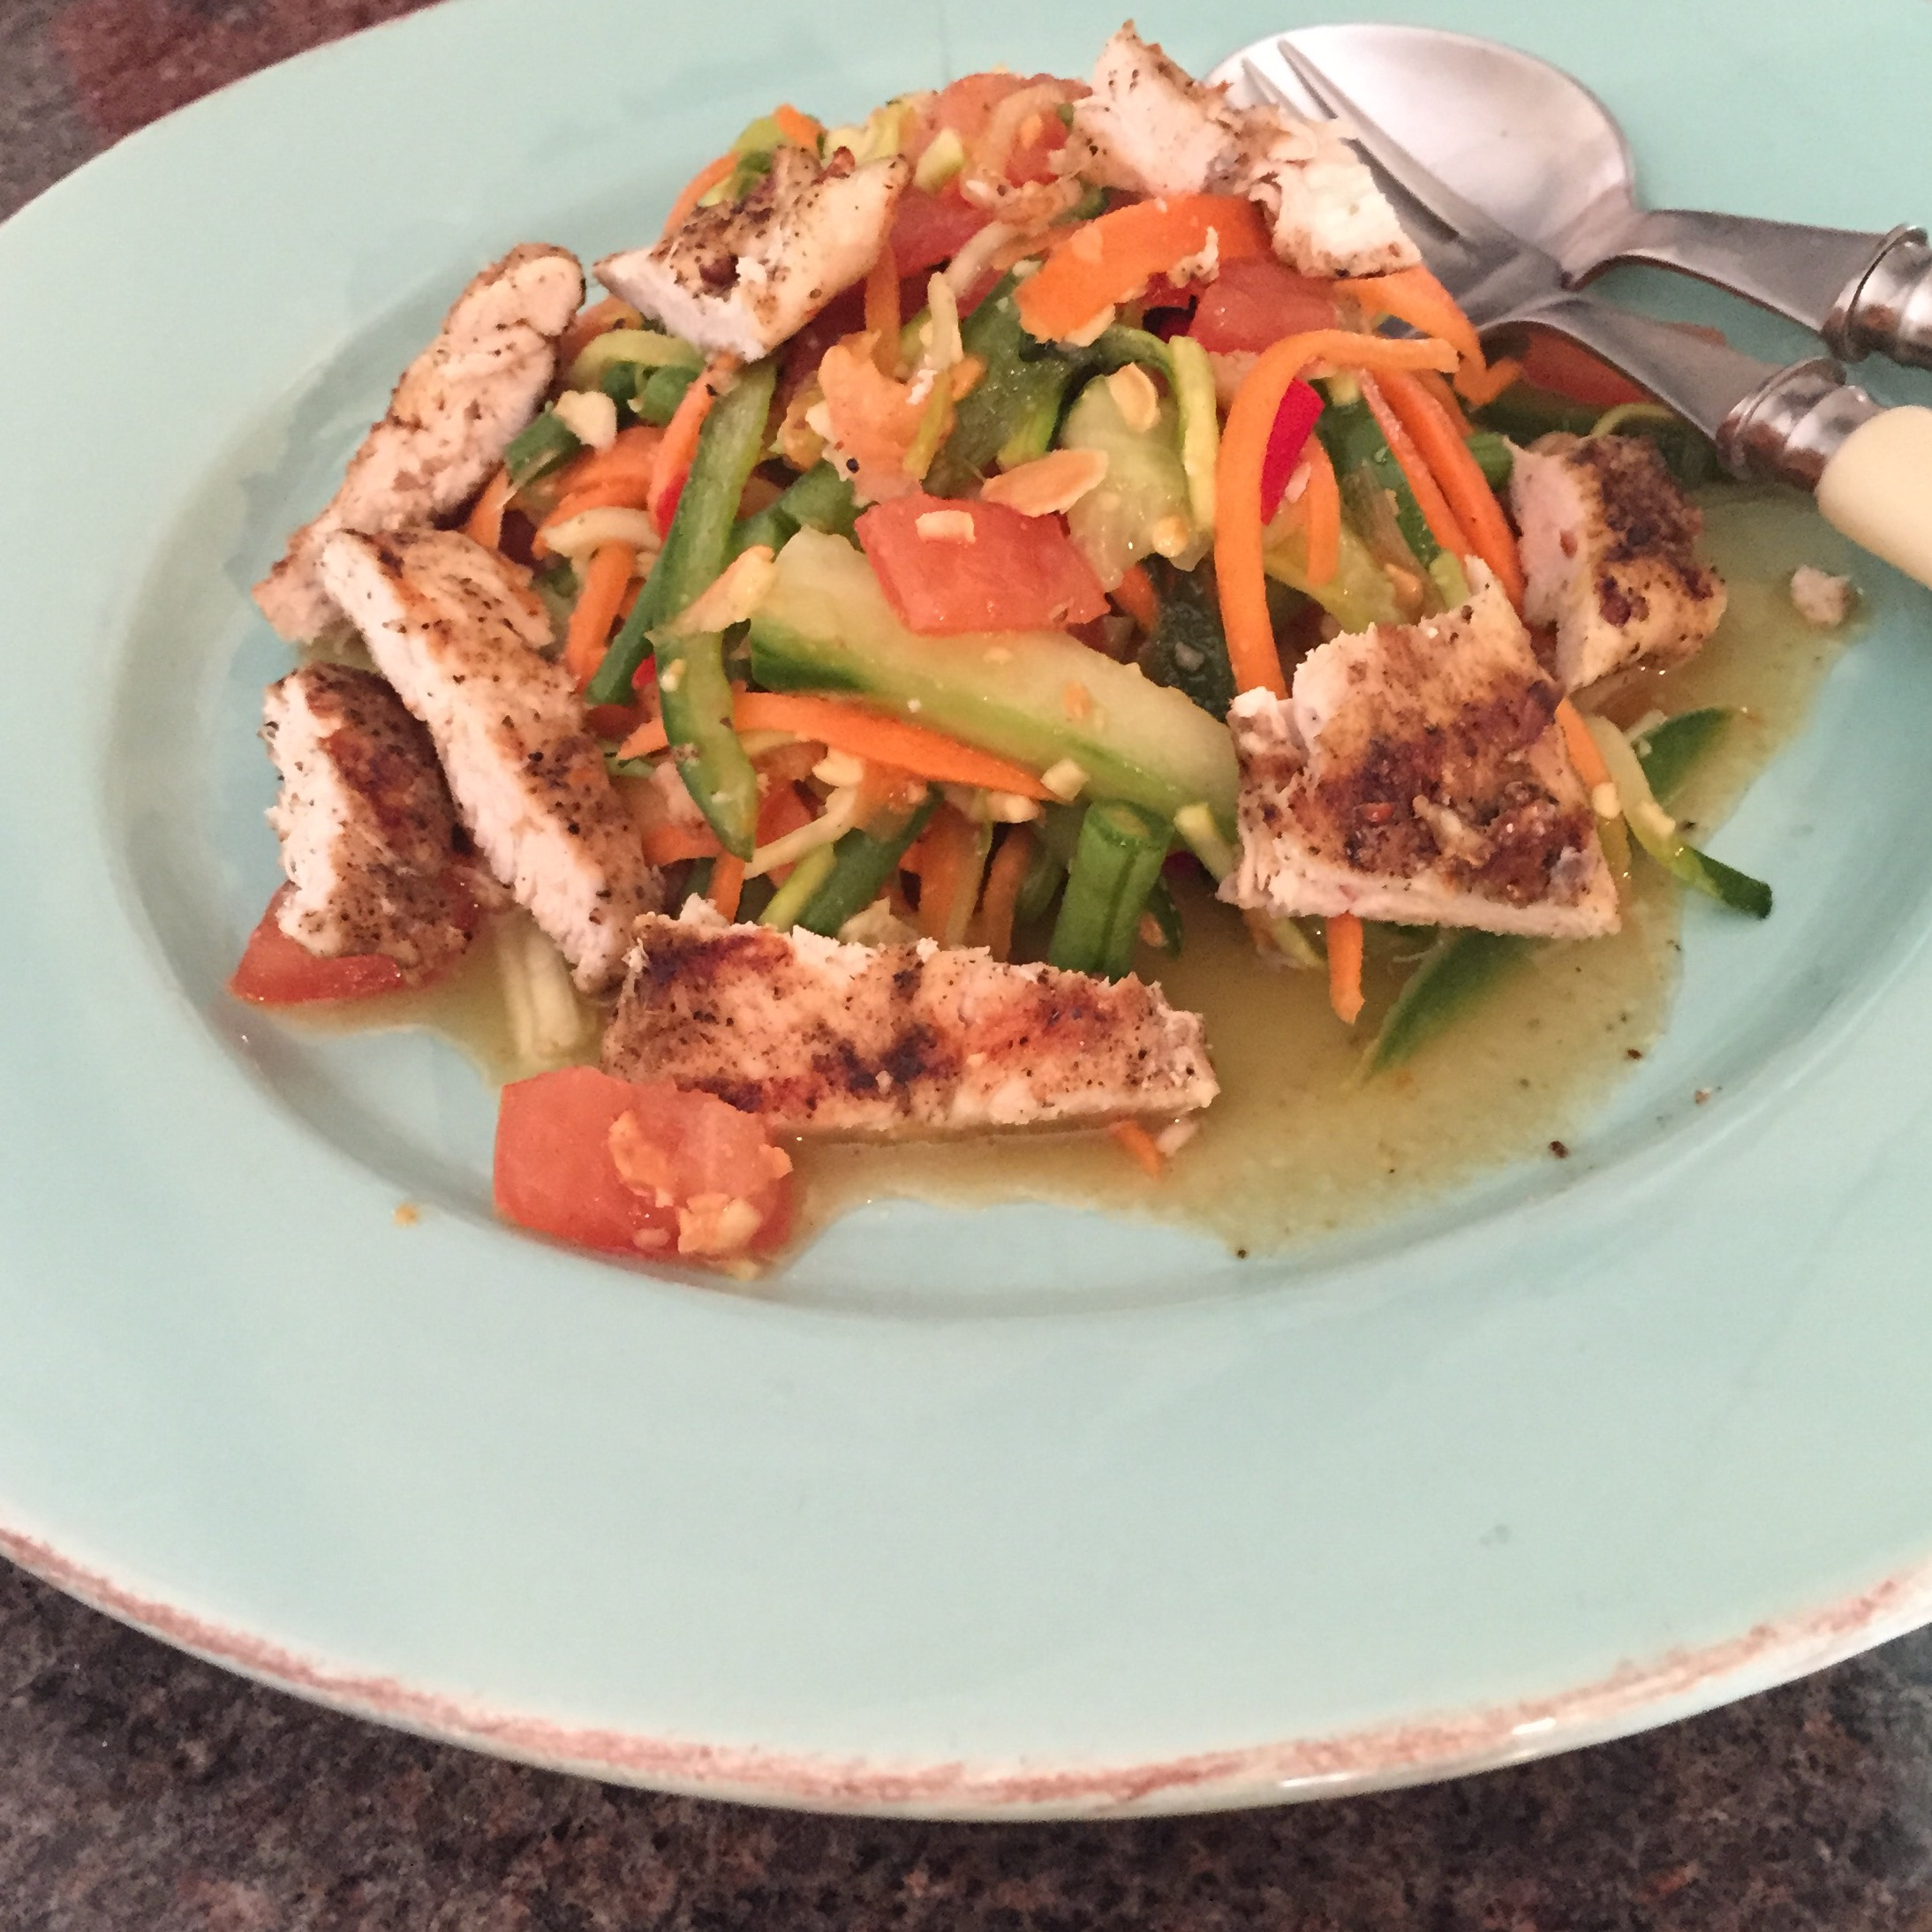 Rachel Redlaw The Tiniest Thai diet som tam Thai salad gai yang Thai roast chicken